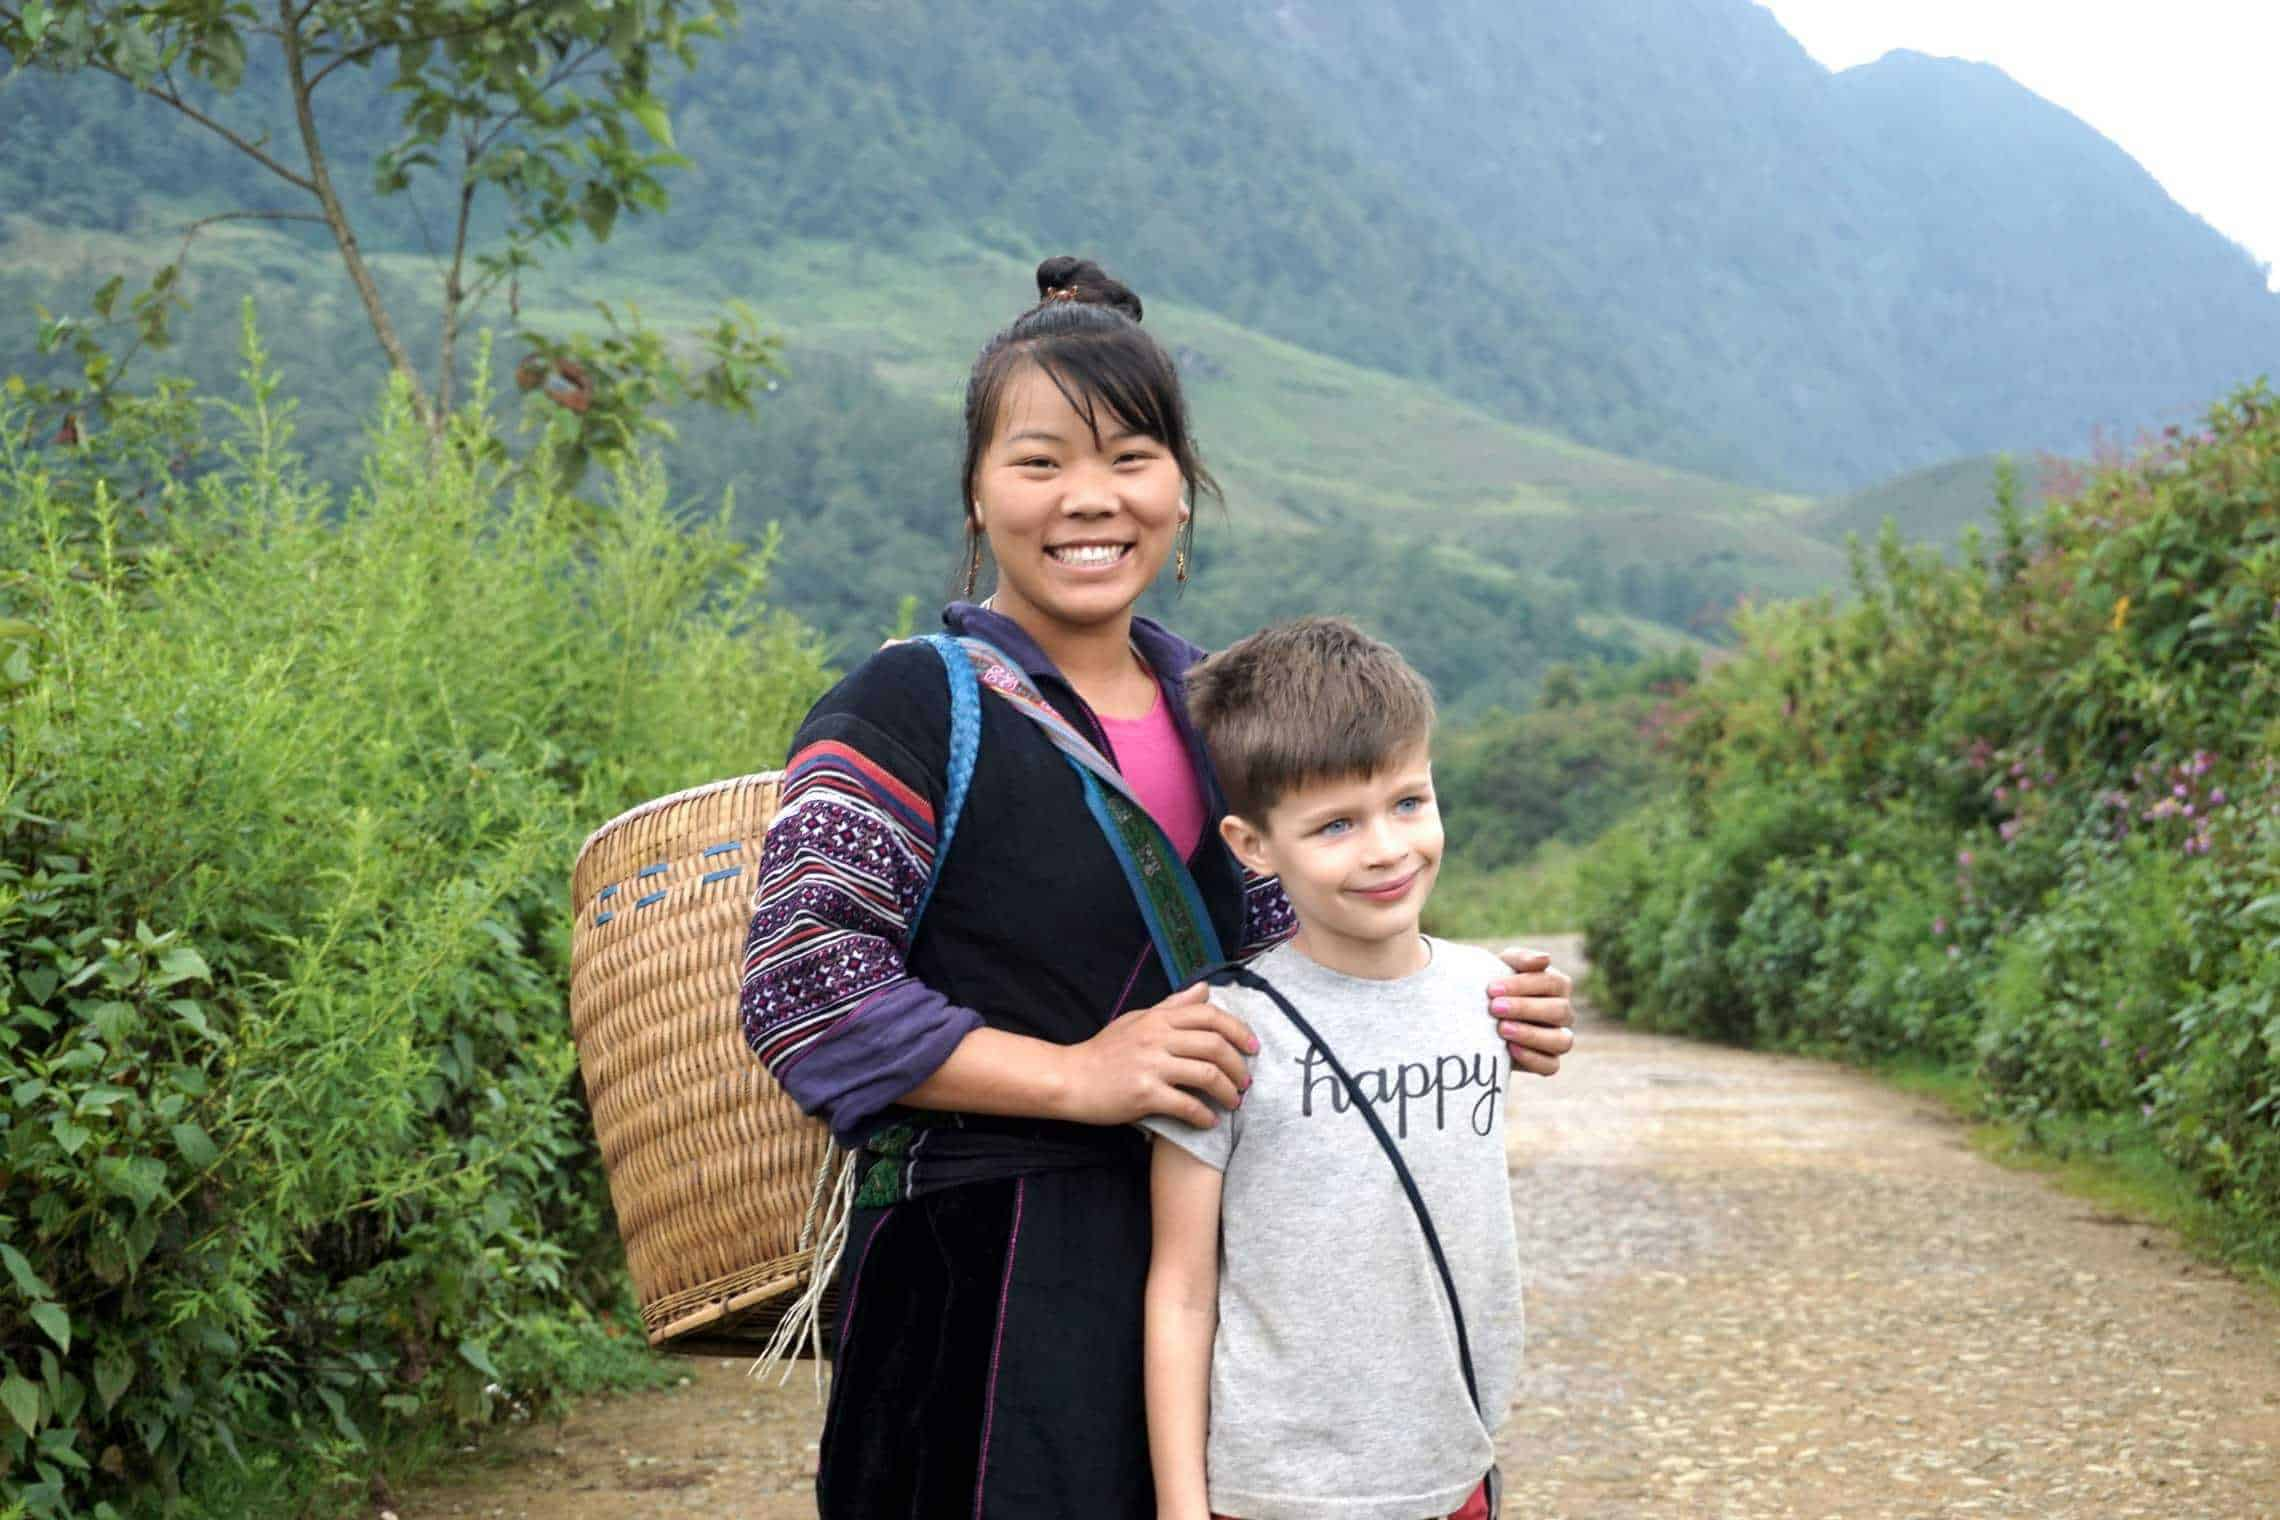 Ethnic villager in Vietnam posing with a foreign child